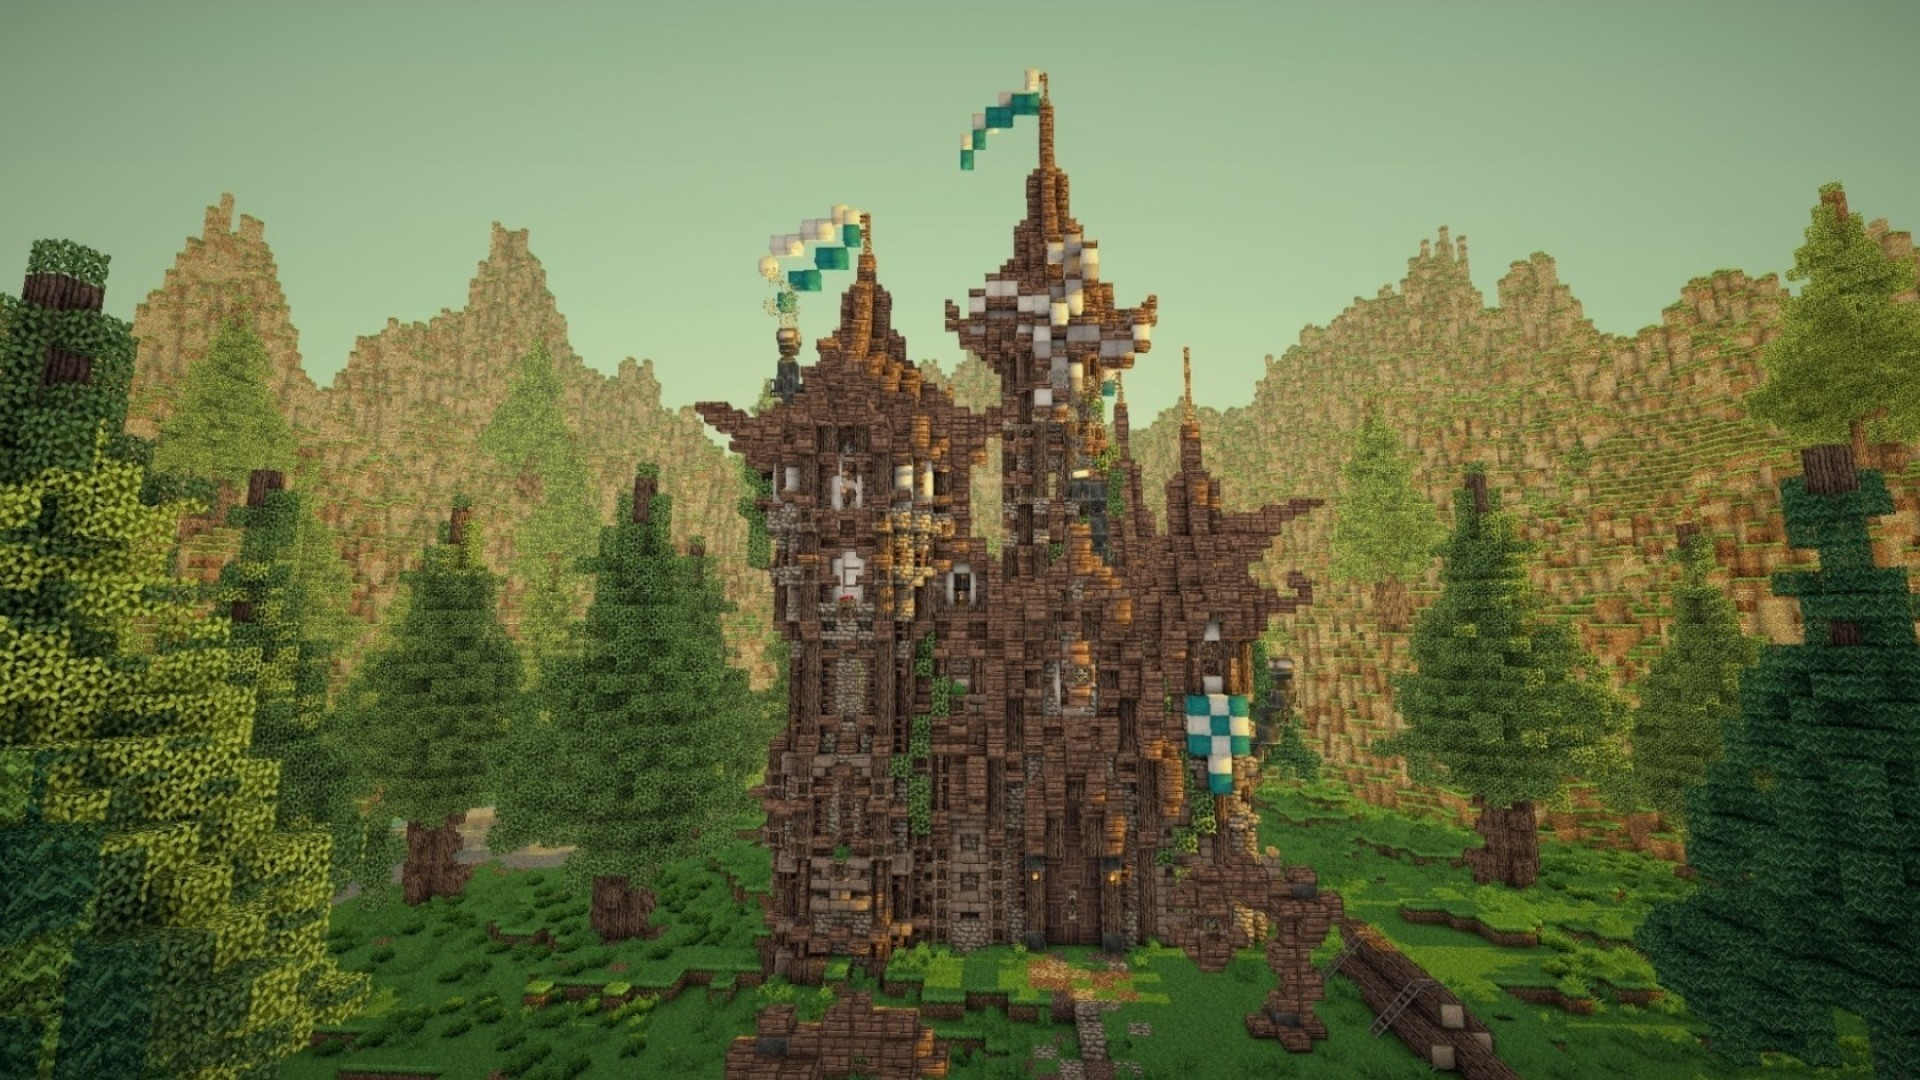 HD Wallpapers Of Minecraft Pictures - Minecraft computerspiele